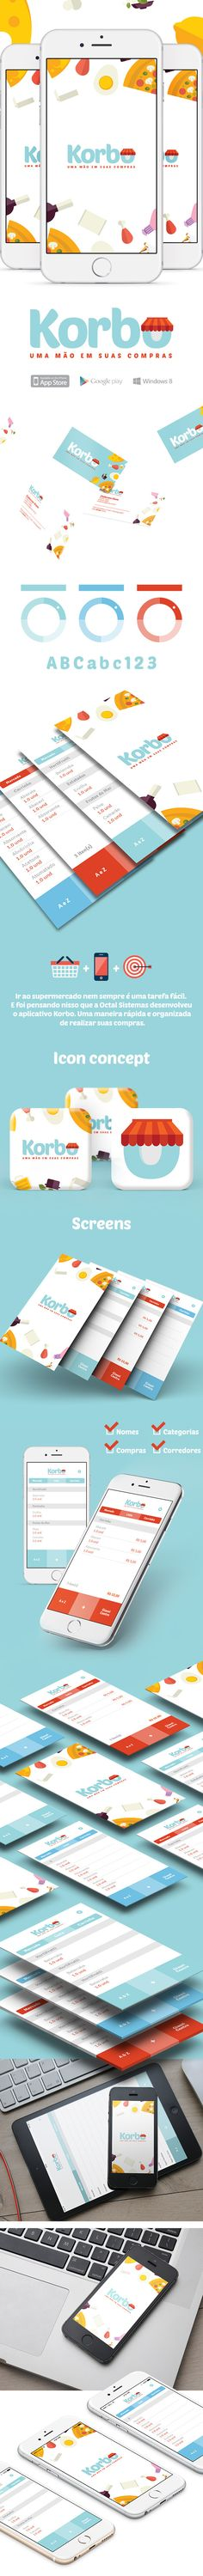 korbo app on Behance